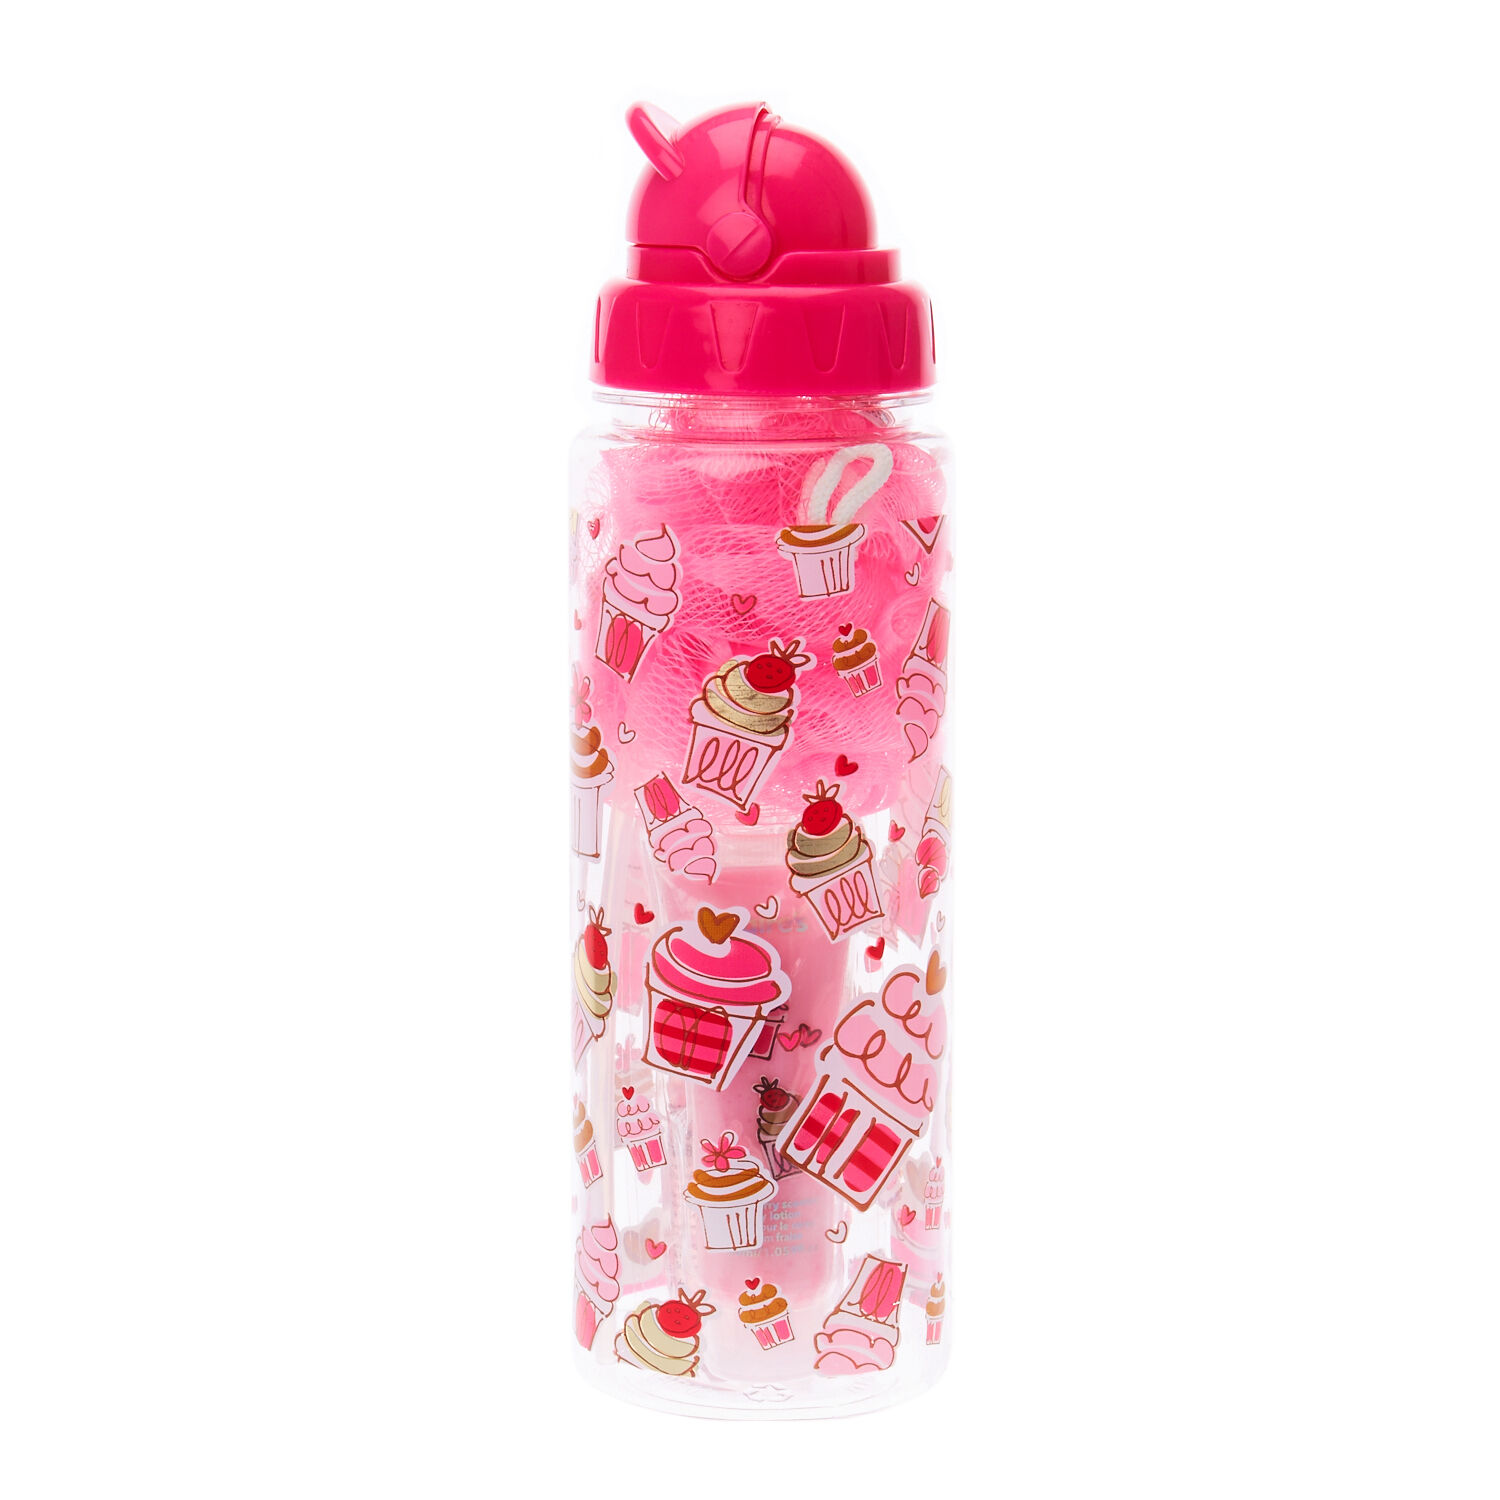 Pink Cup Cake Water Bottle Gift Set   Claire's